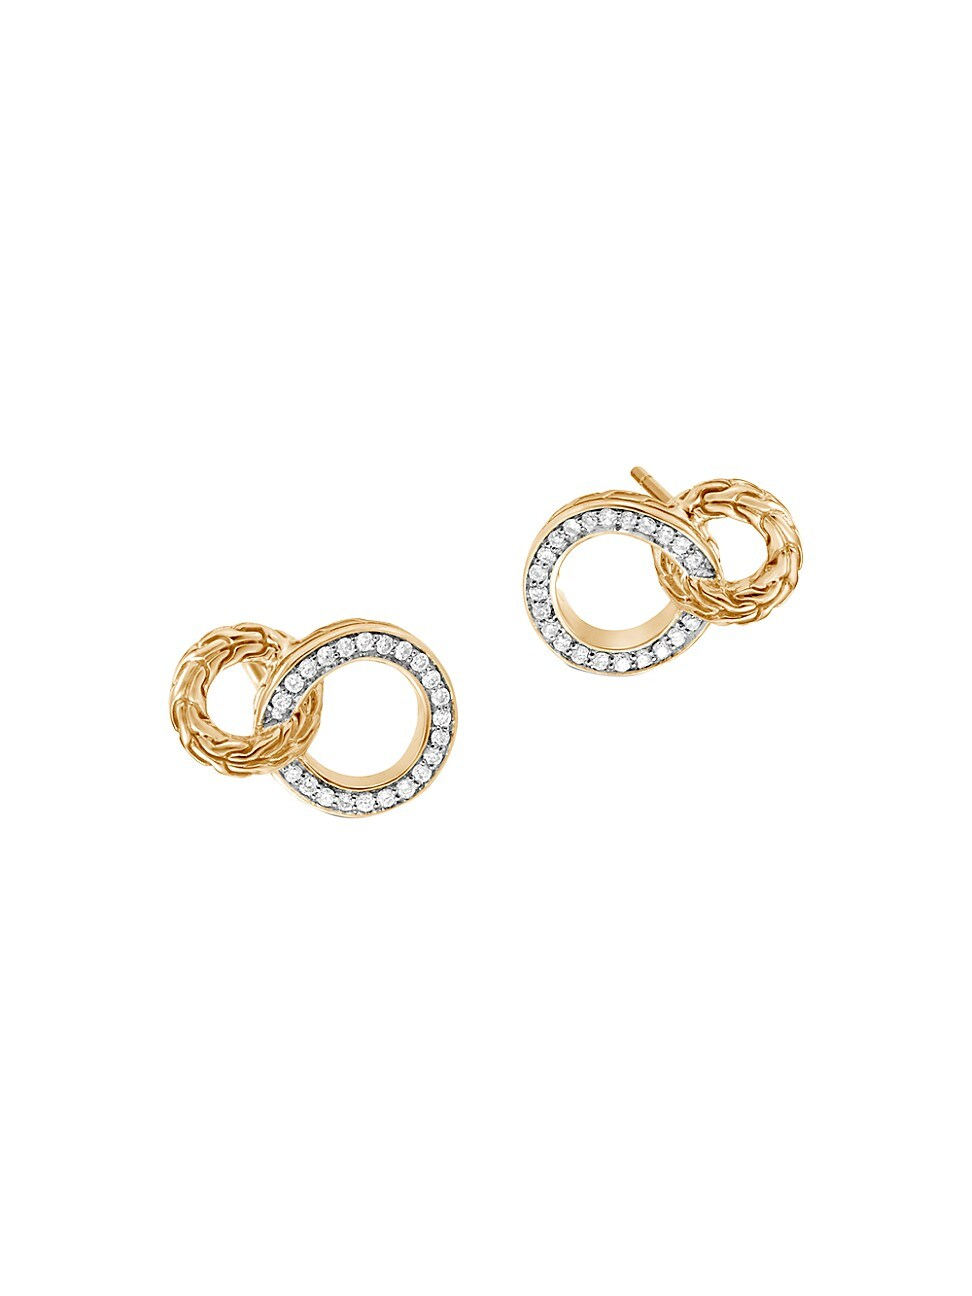 John Hardy Women's Classic Chain 18k Gold & Diamond Interlinking Hoop Earrings